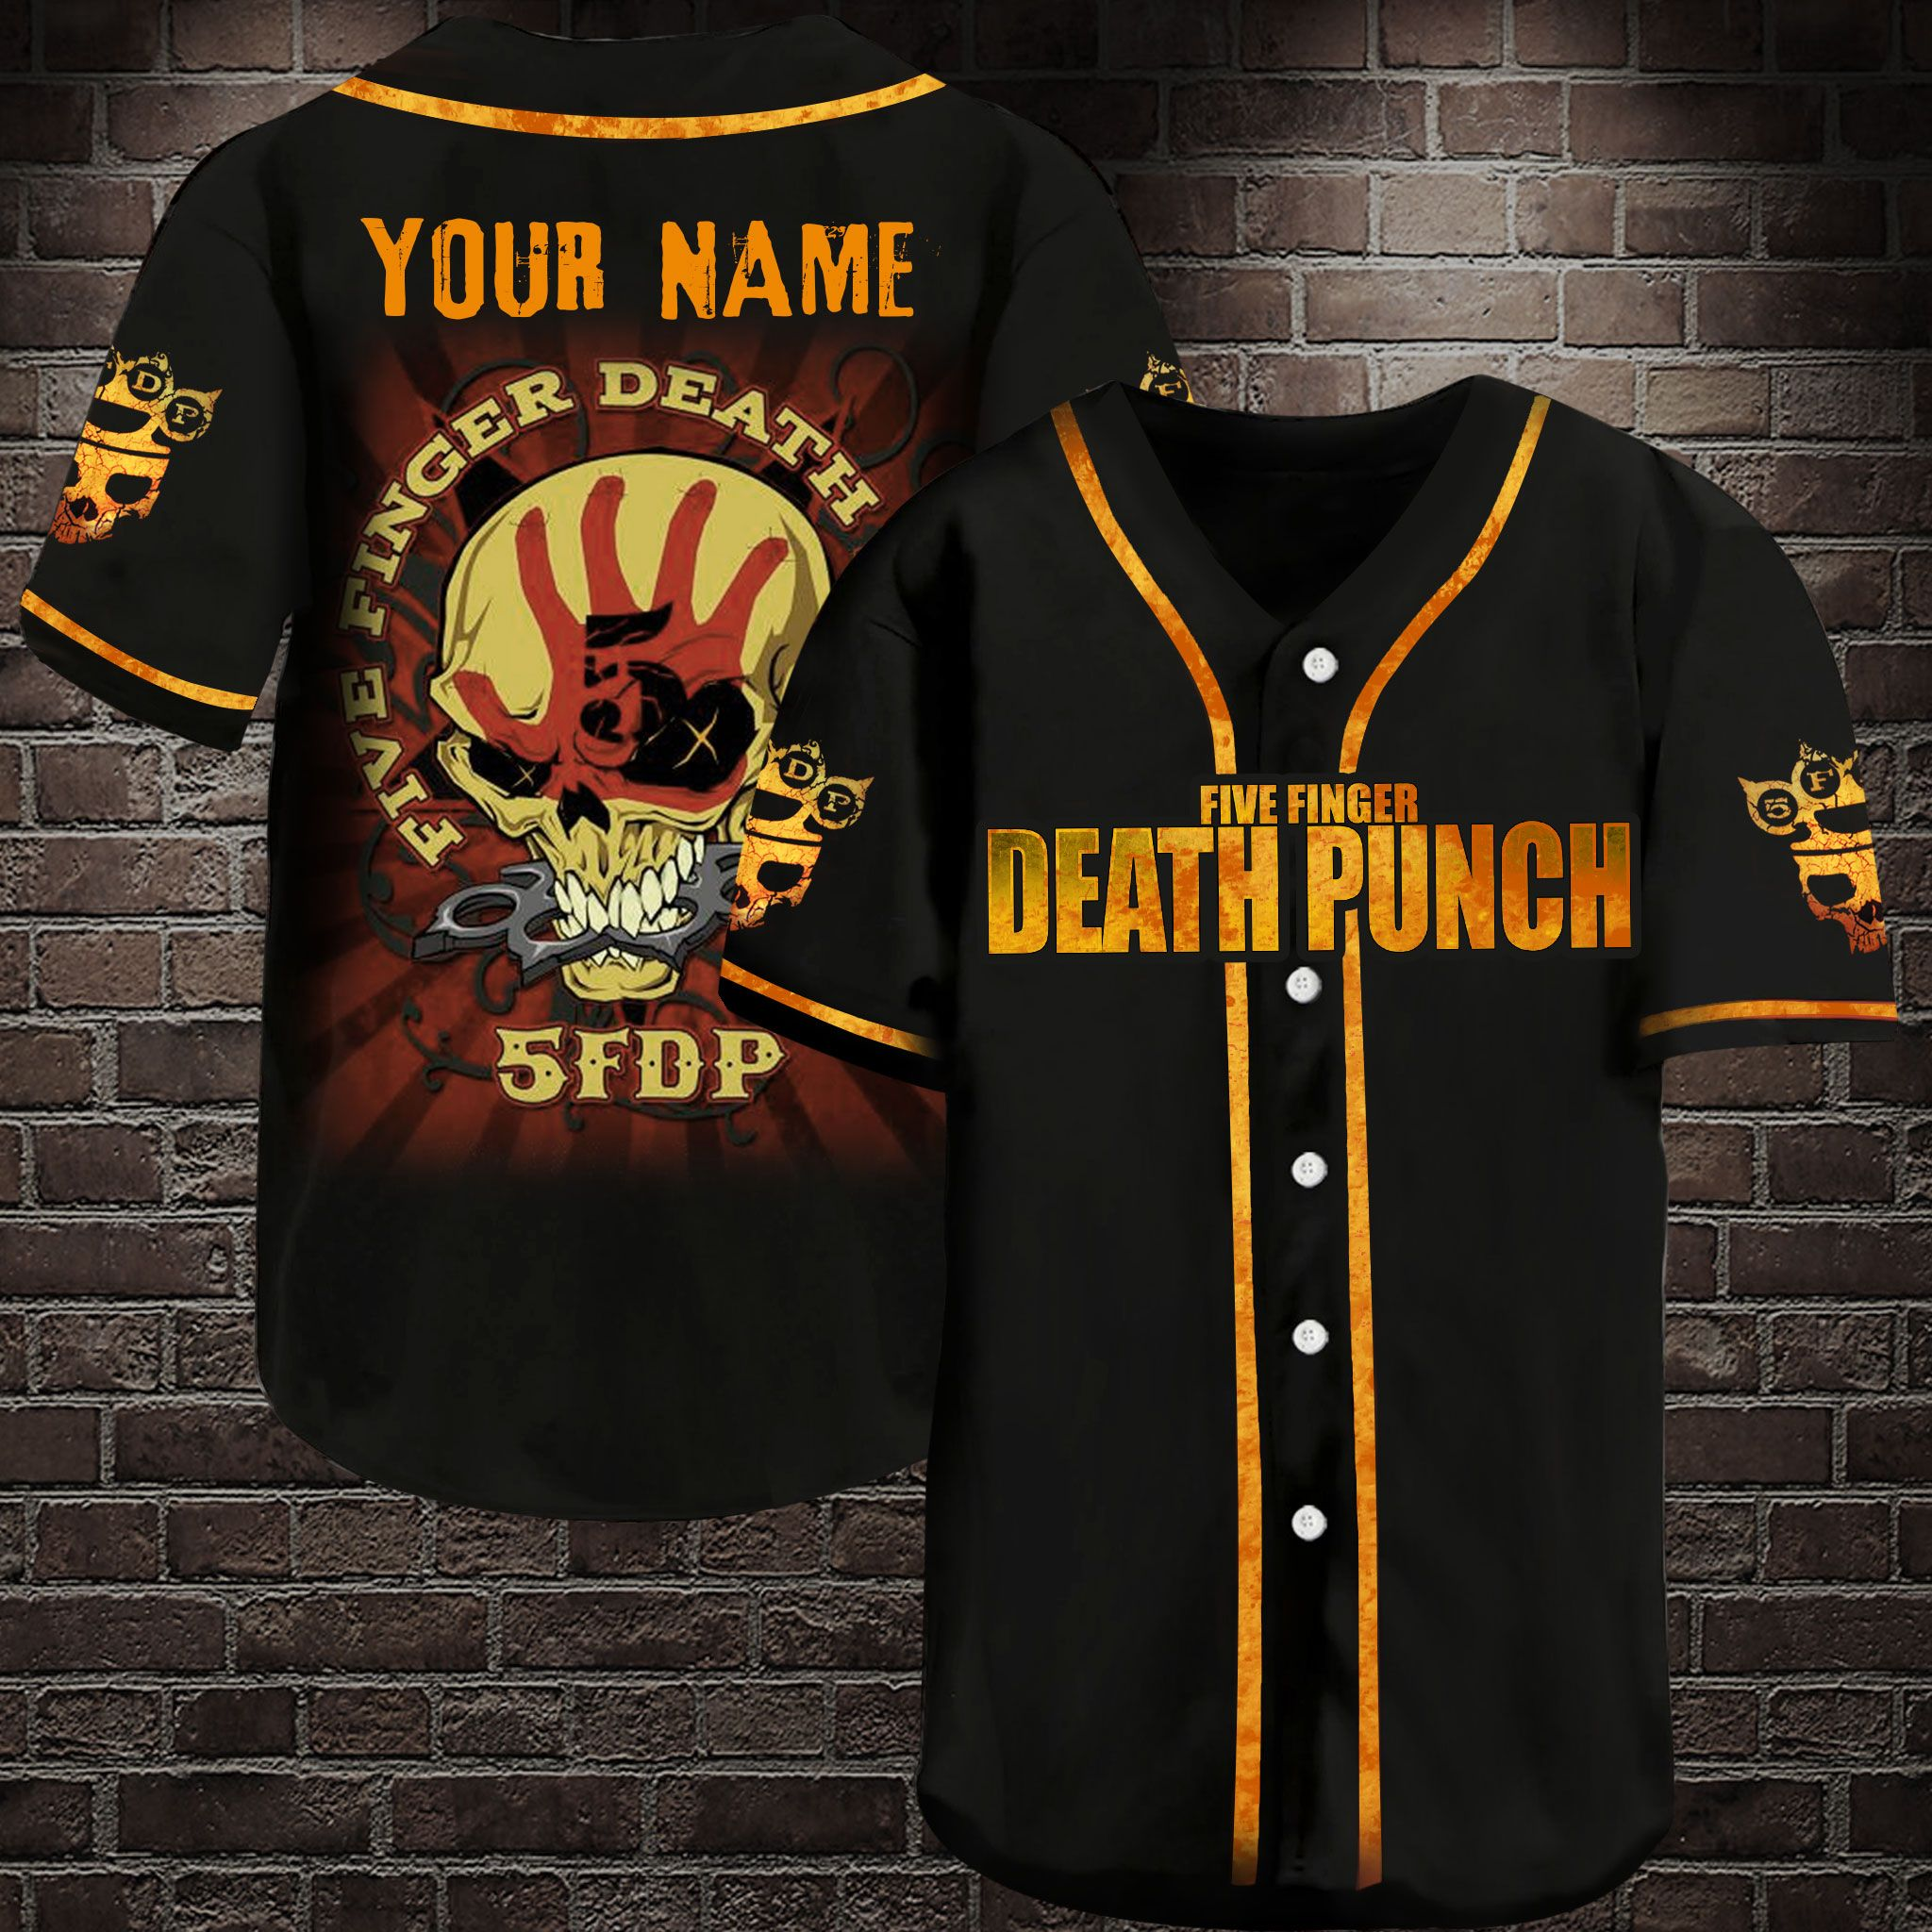 Five finger death punch Personalized Baseball Jersey Shirt